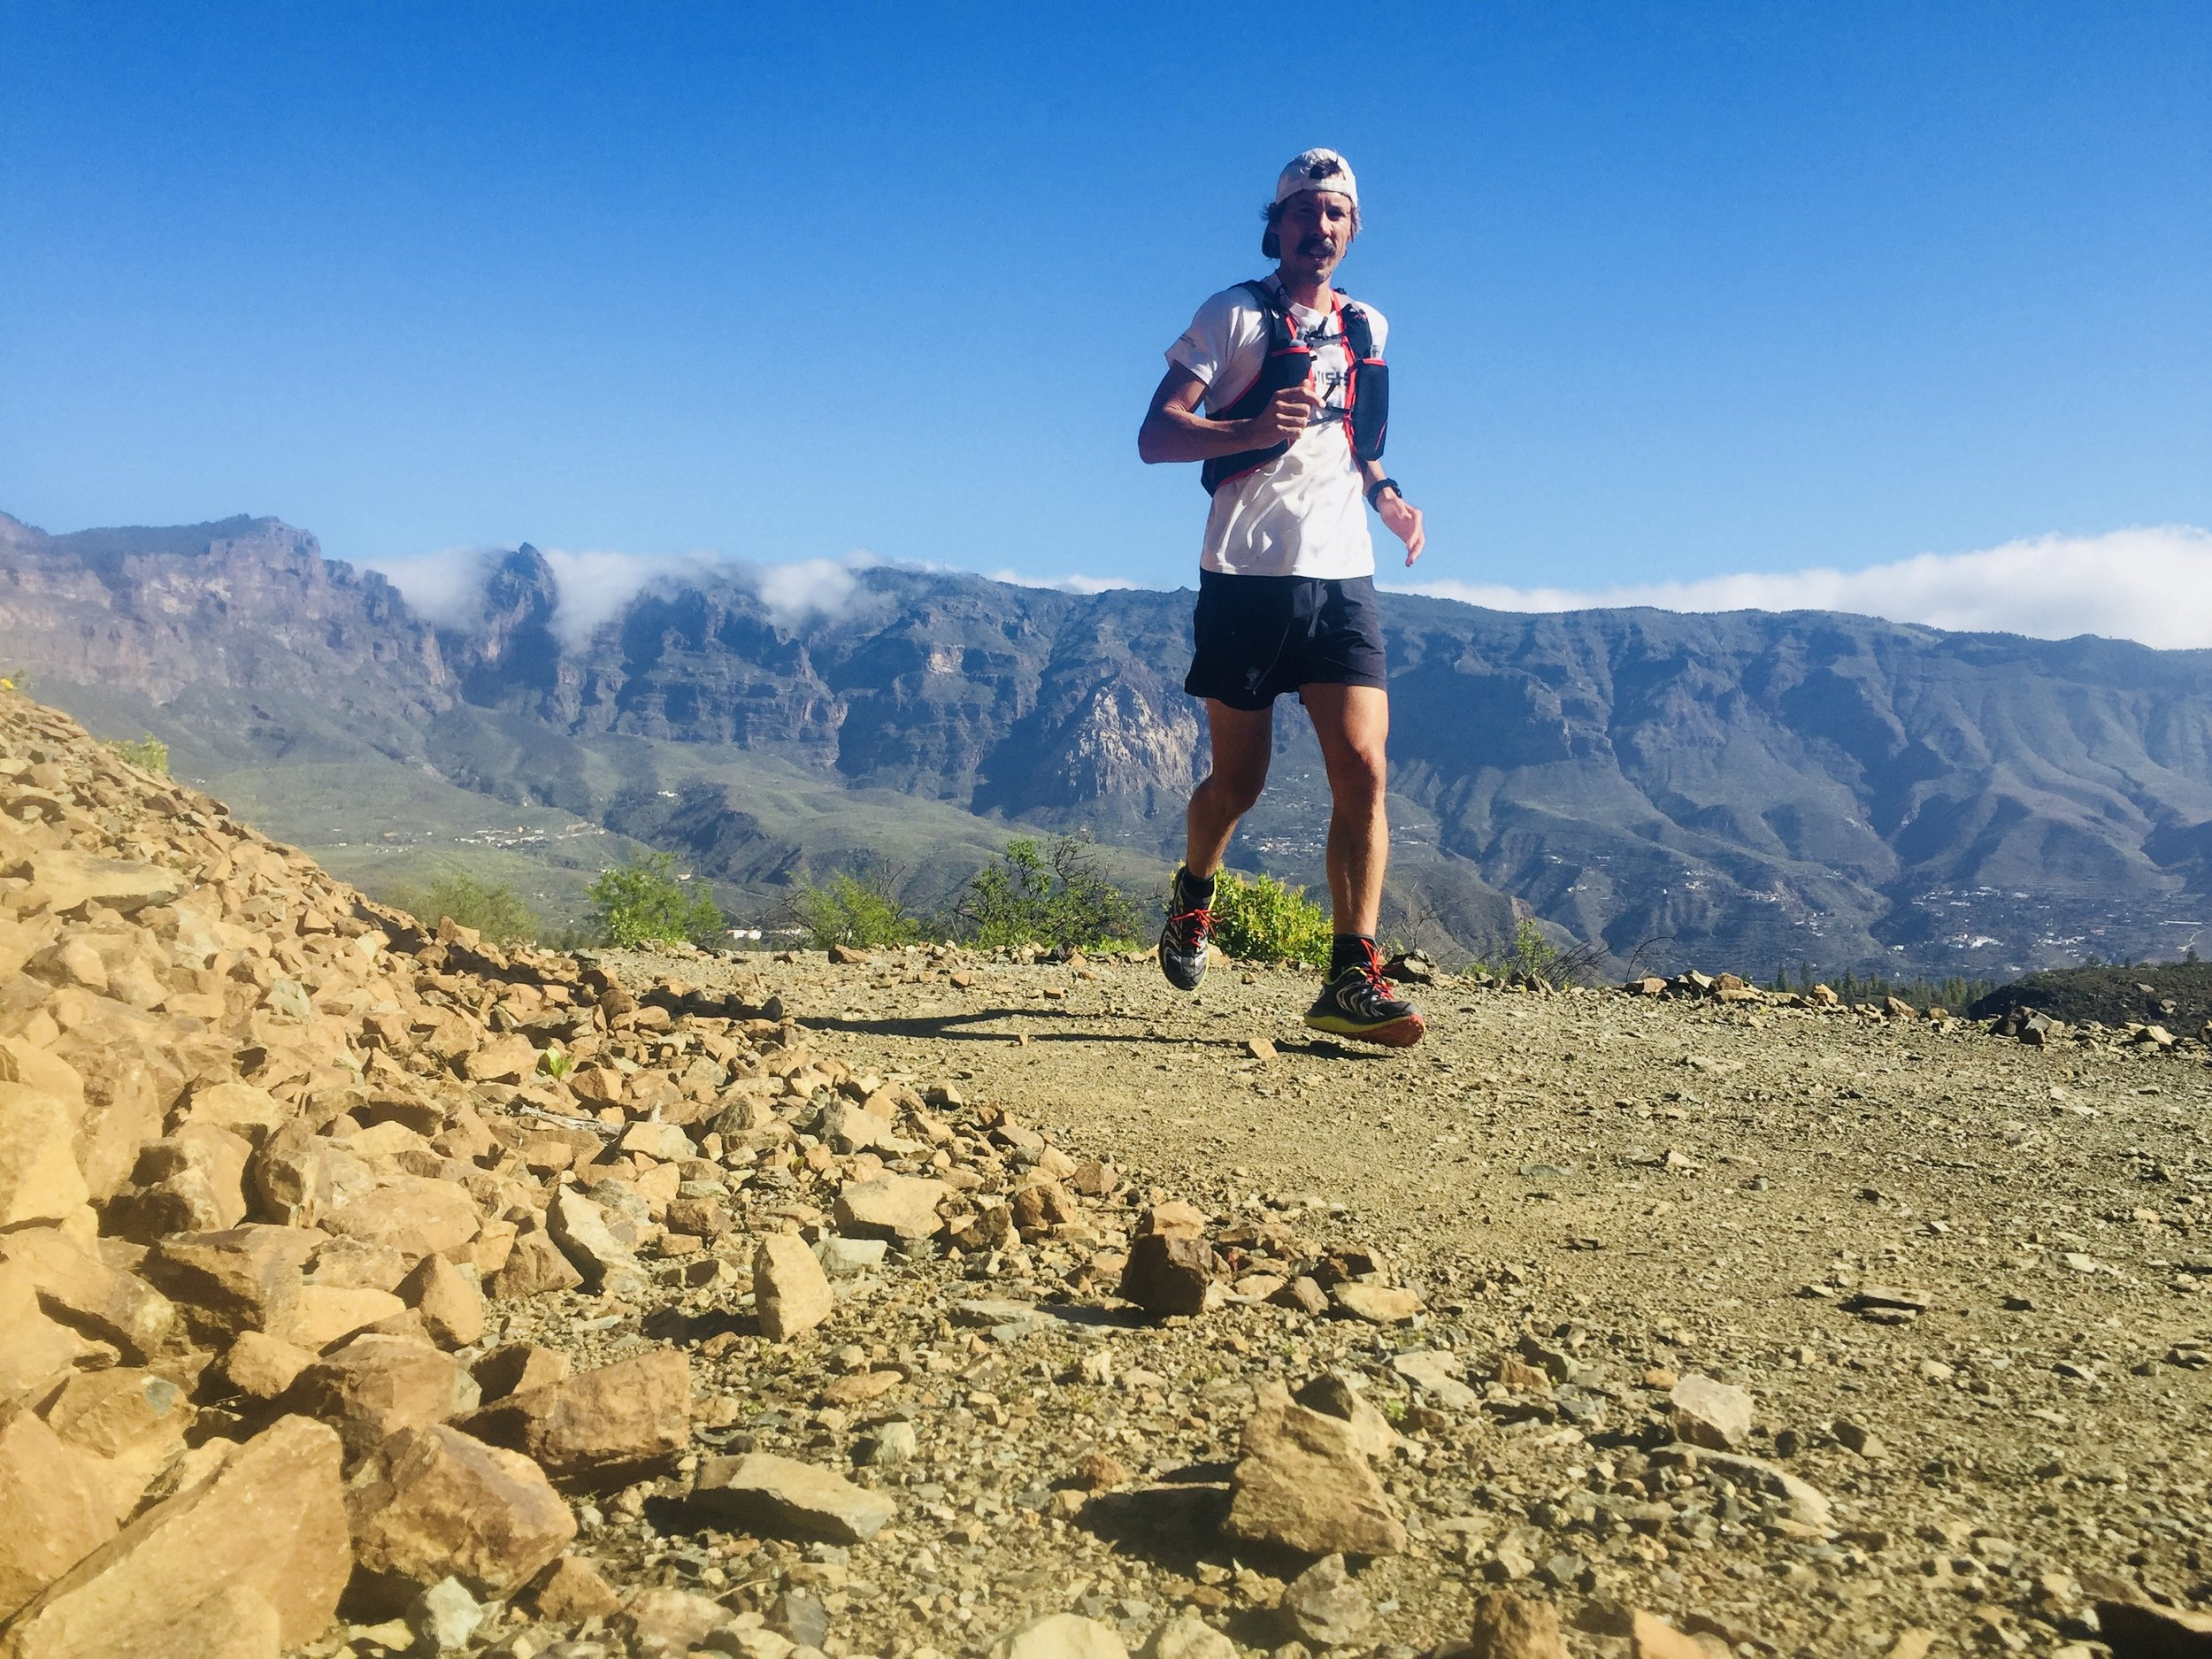 Kristian Morgan, here seen training for the Transgrancanaria Ultra, intends to average 55 miles per day on the Appalachian Trail